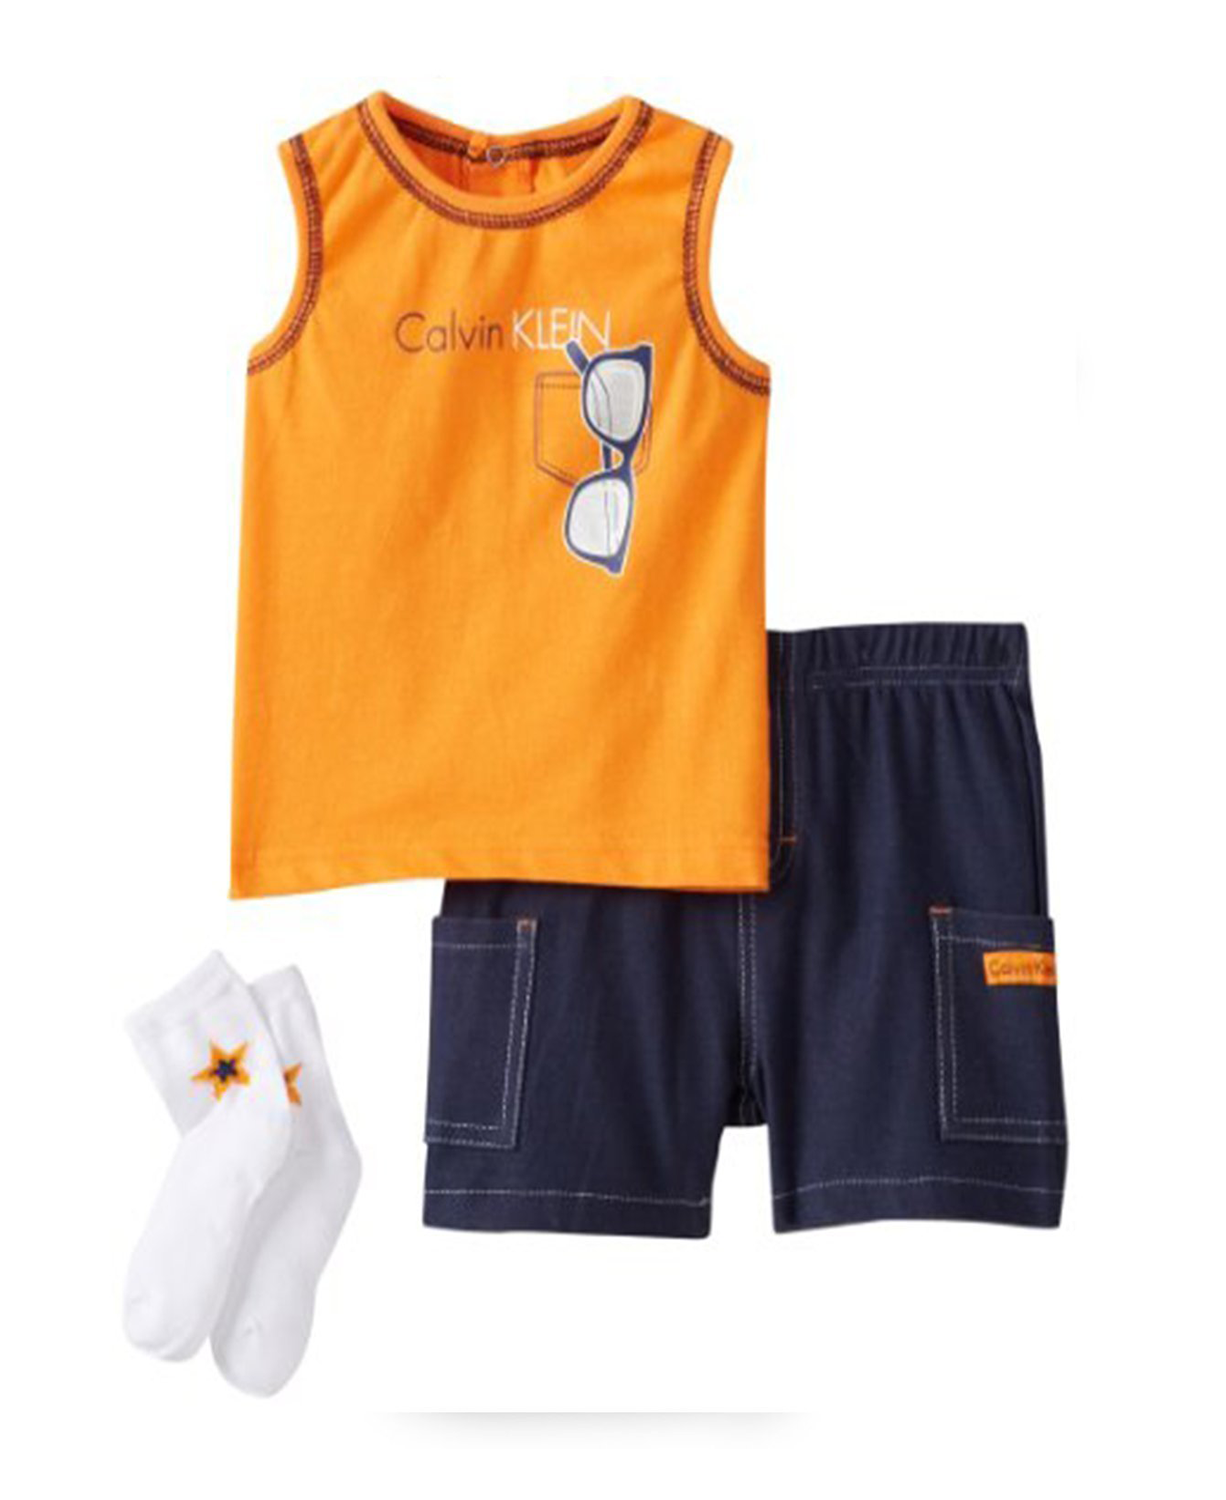 Calvin Klein Baby Boy 3 Piece Set With Shorts Tank Top And